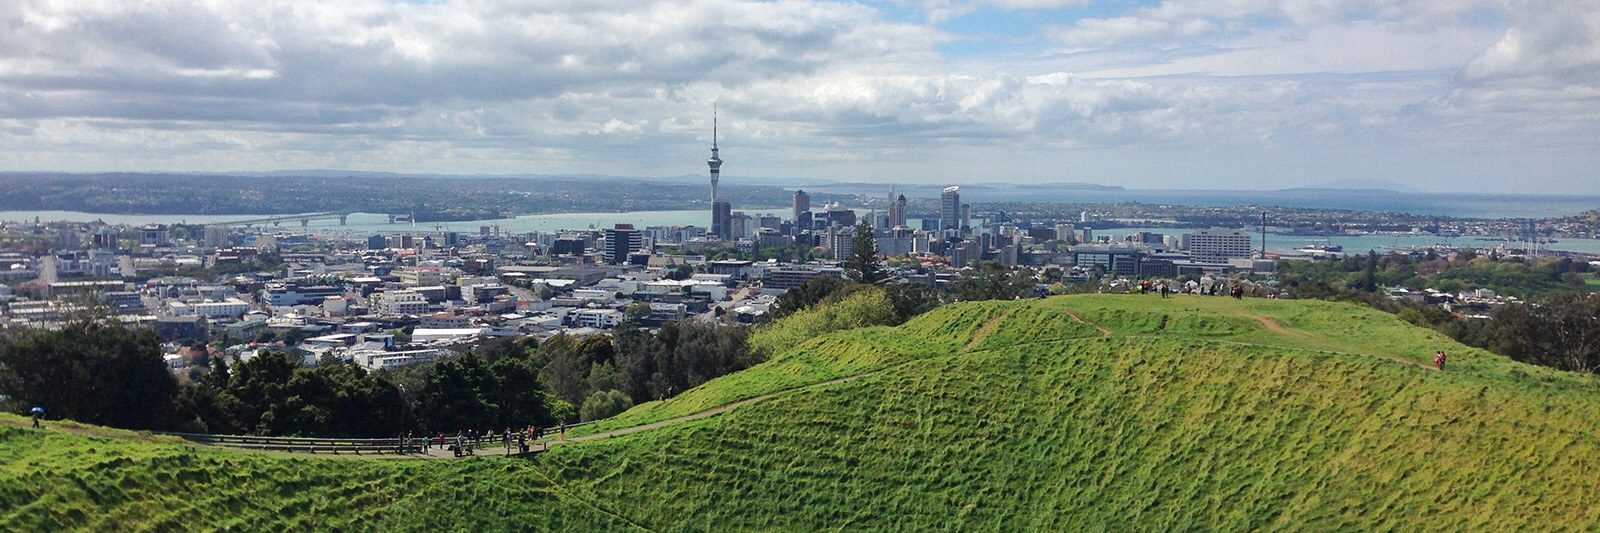 Mount Eden, also known as Maungawhau, is the tallest mainland volcano in Auckland, New Zealand